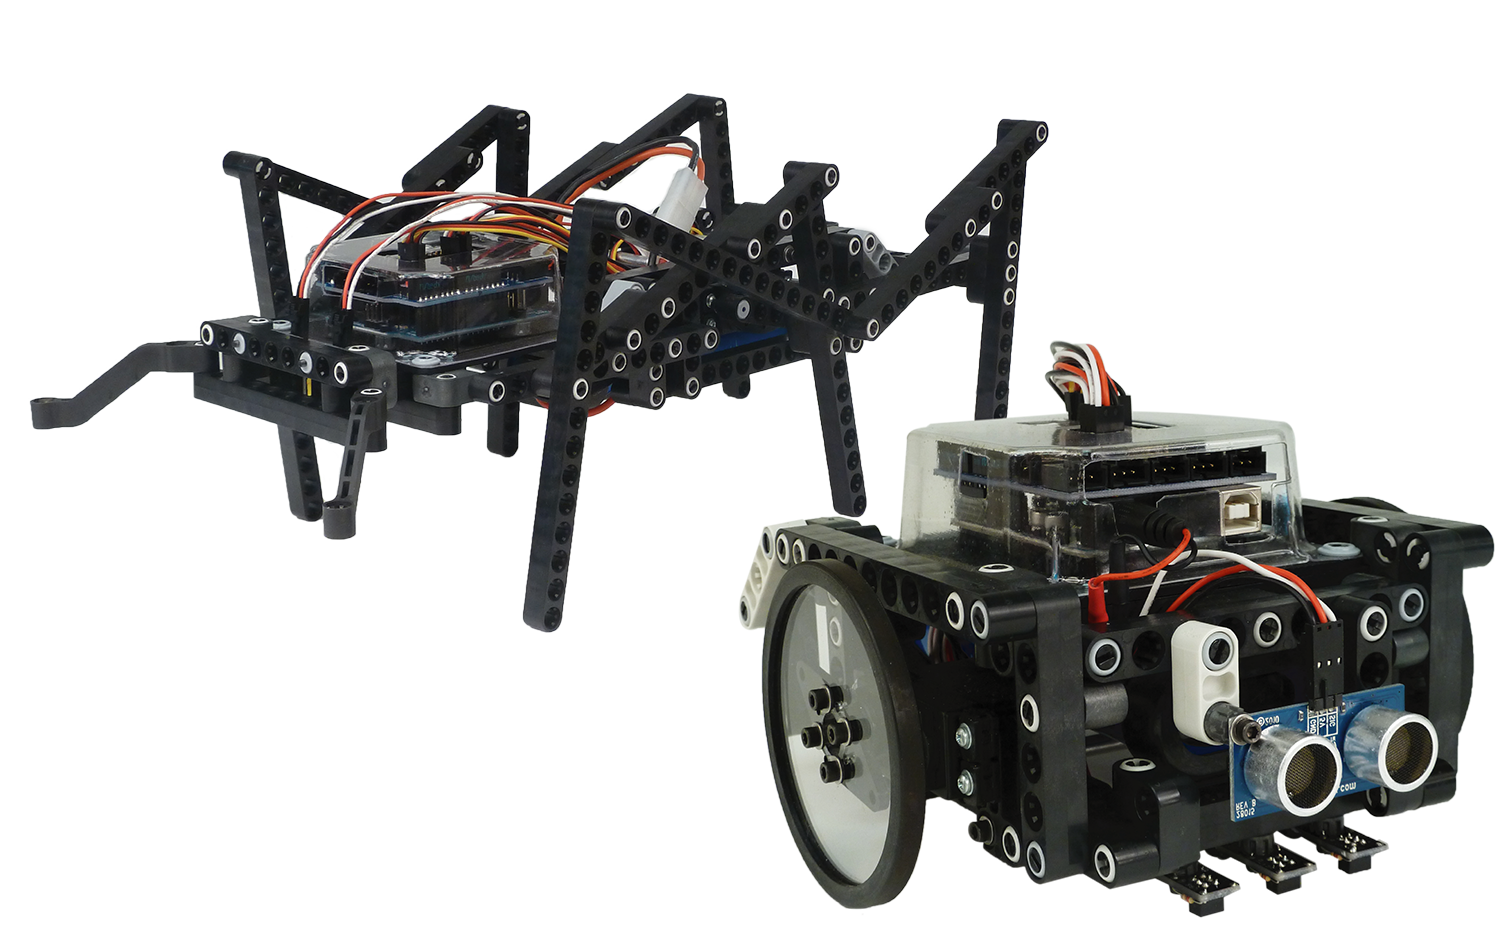 2-in-1 Arduino Robot Kit Image